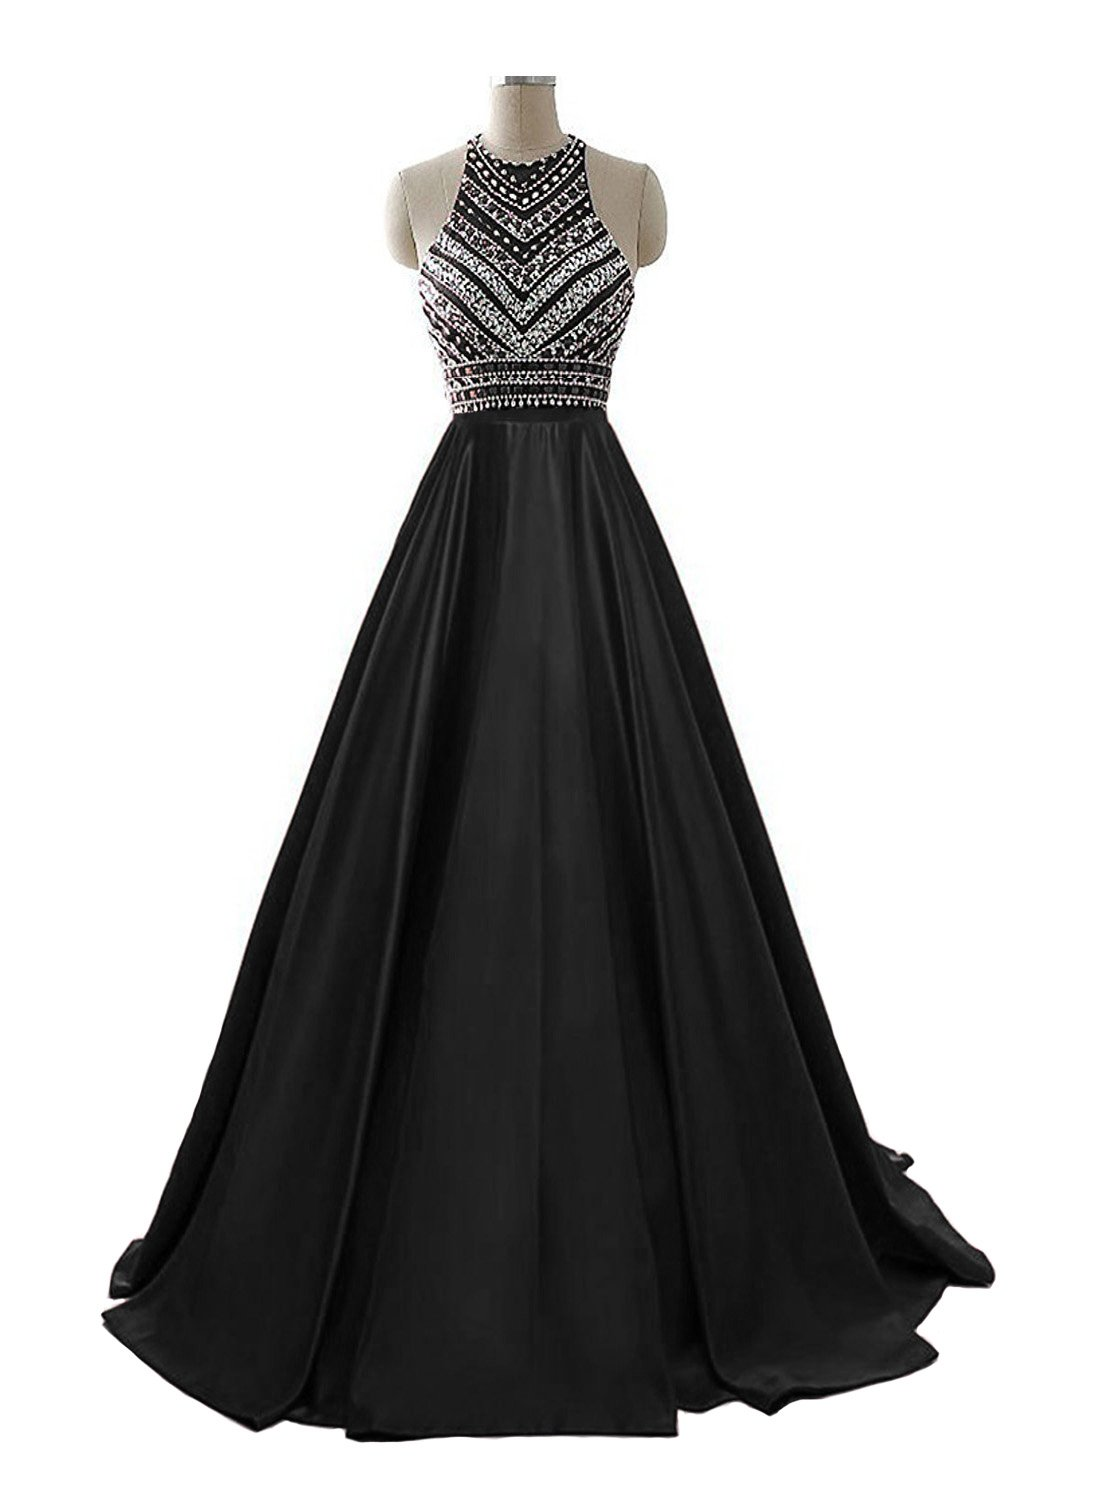 HEIMO Women's Sequins Evening Party Gowns Beading Formal Prom Dresses Long H187 16 Black